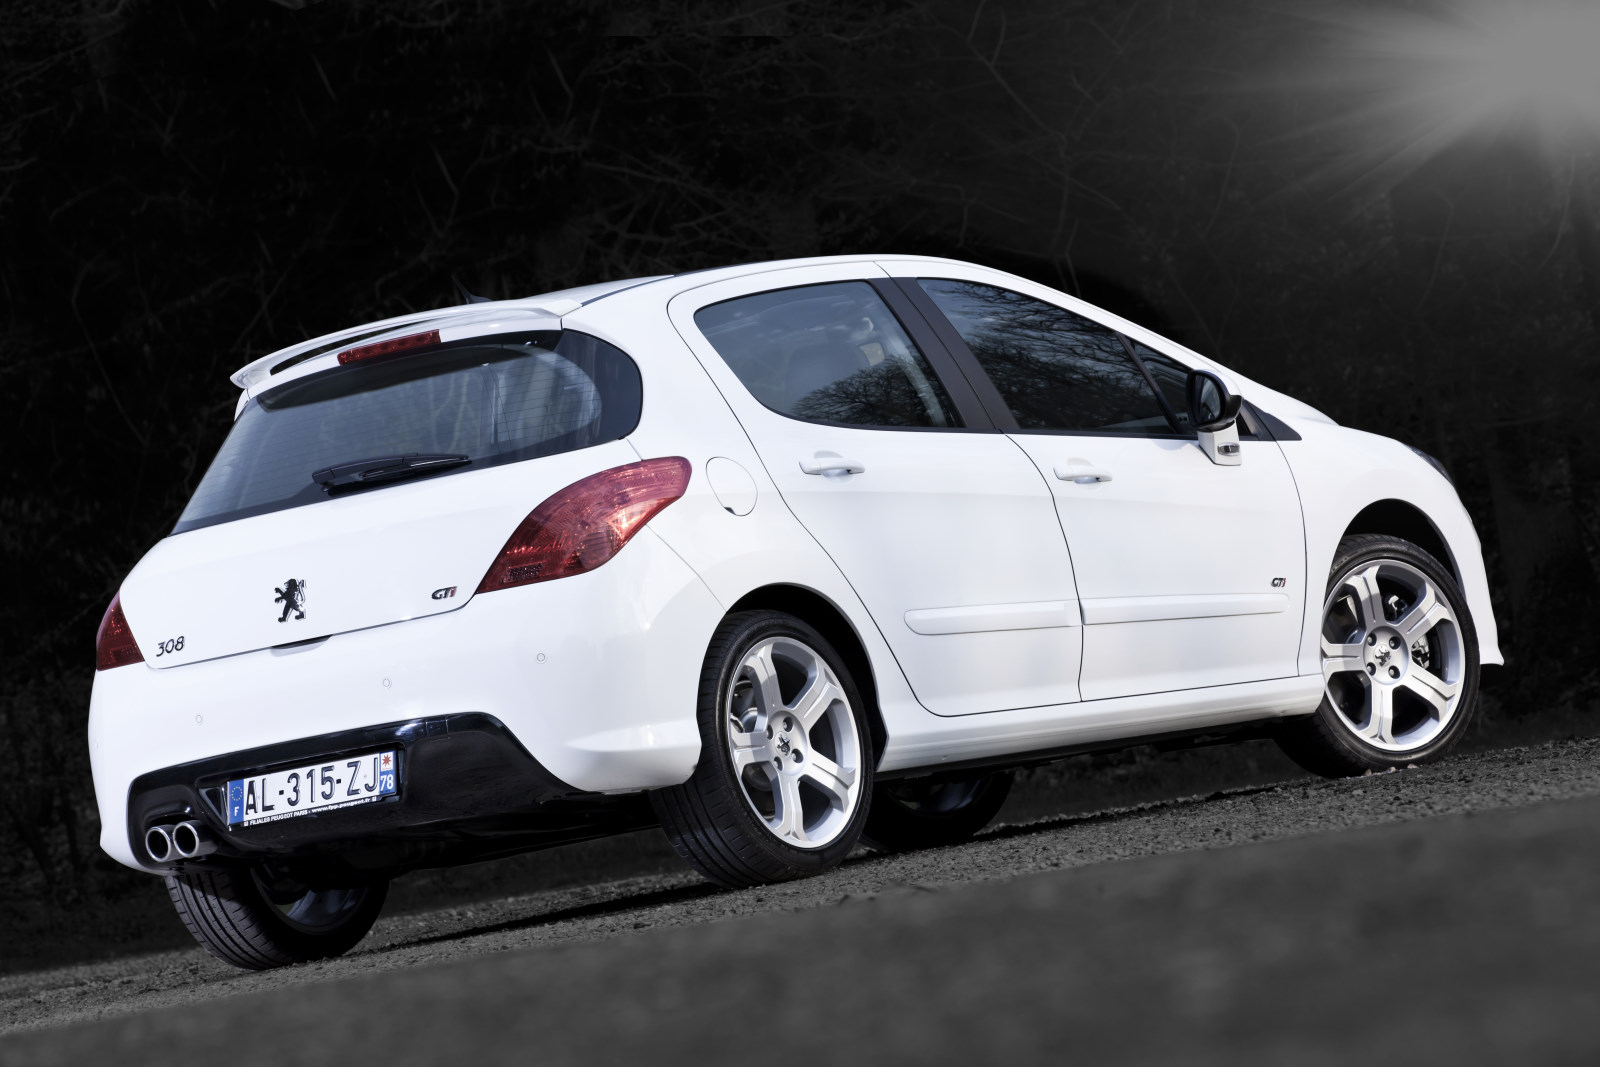 peugeot 308 gti lan ado na argentina car blog br. Black Bedroom Furniture Sets. Home Design Ideas